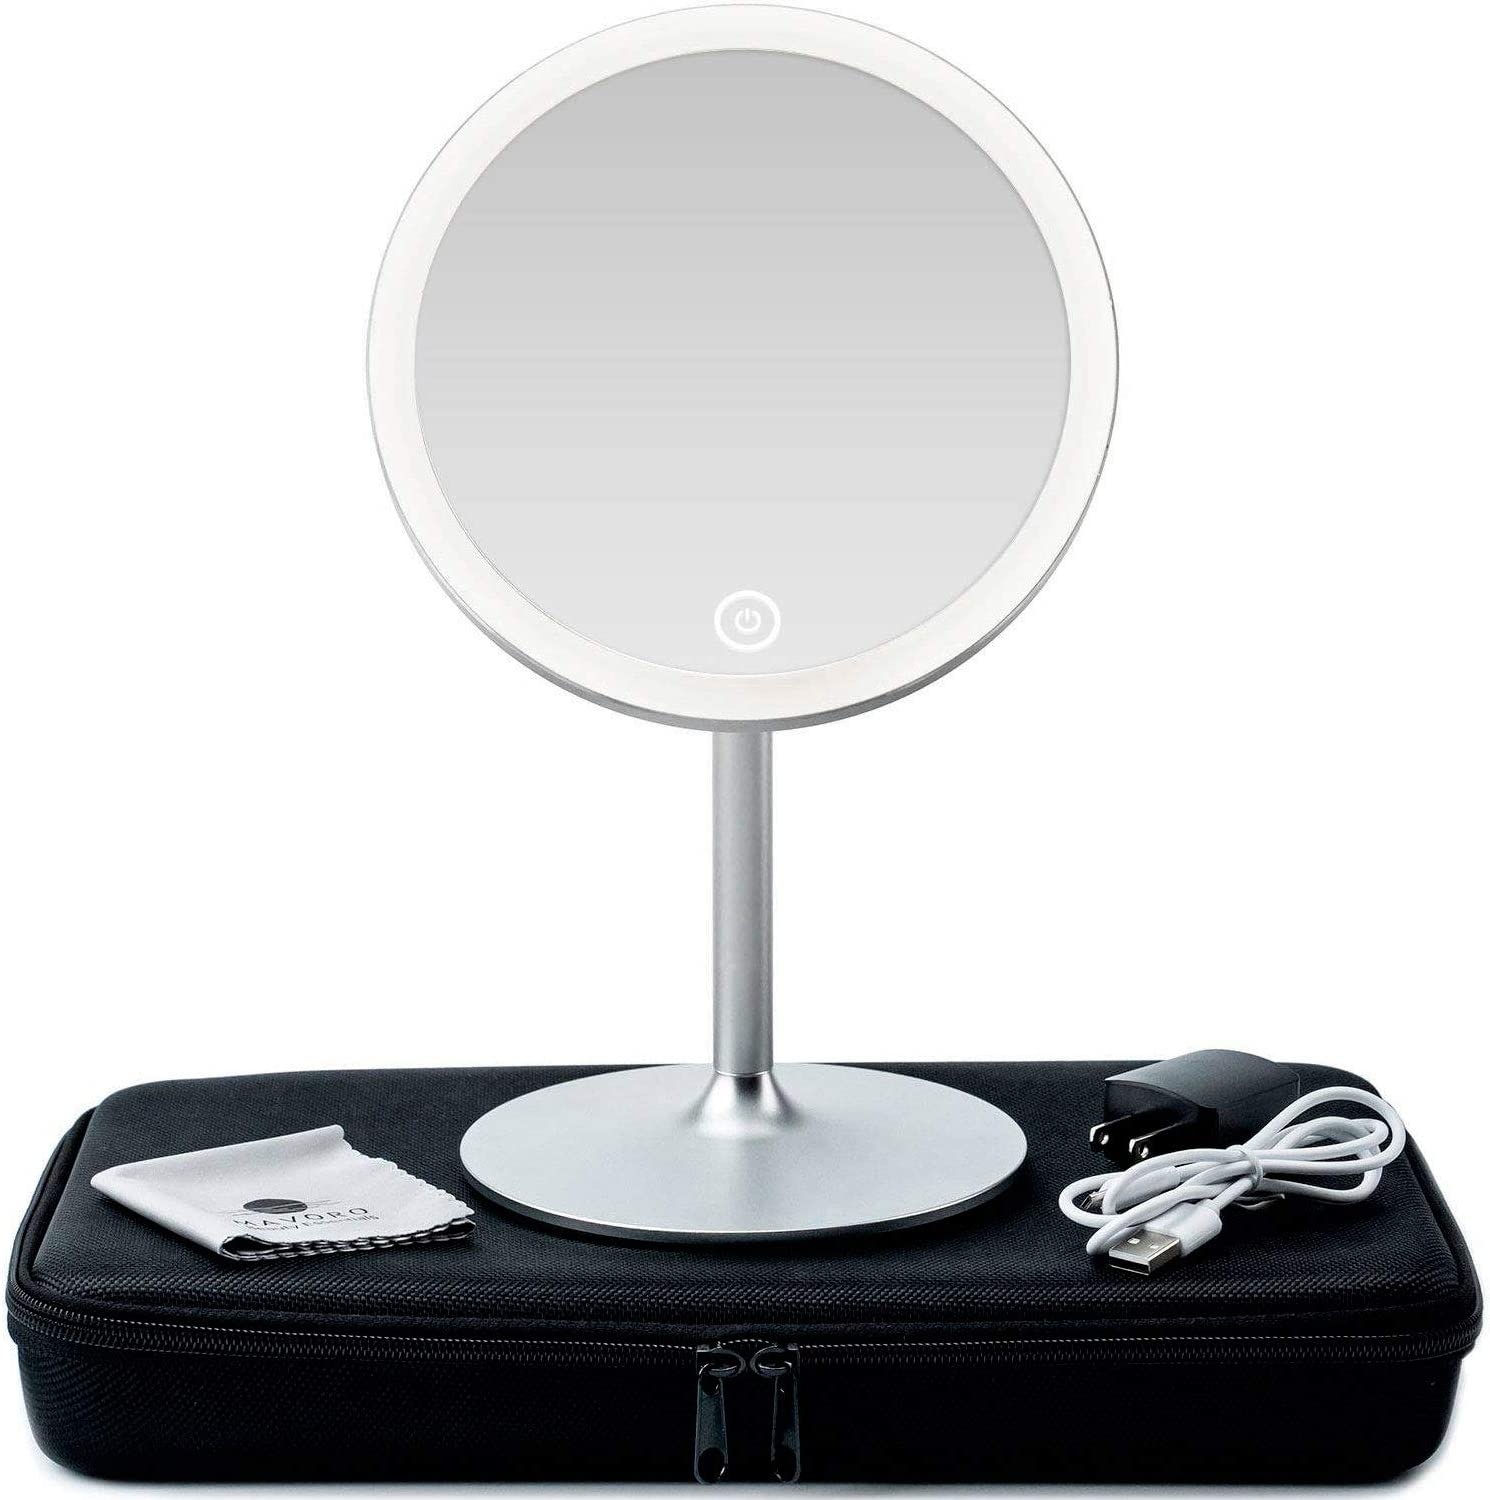 3d Lighted Makeup Mirror With Magnification 5x 360 Degree Swivel Led Make Up Mirror With Continuous Ring Light For Illumination Collapsible Vanity Mirror With Lights Travel Make Up Mirrors